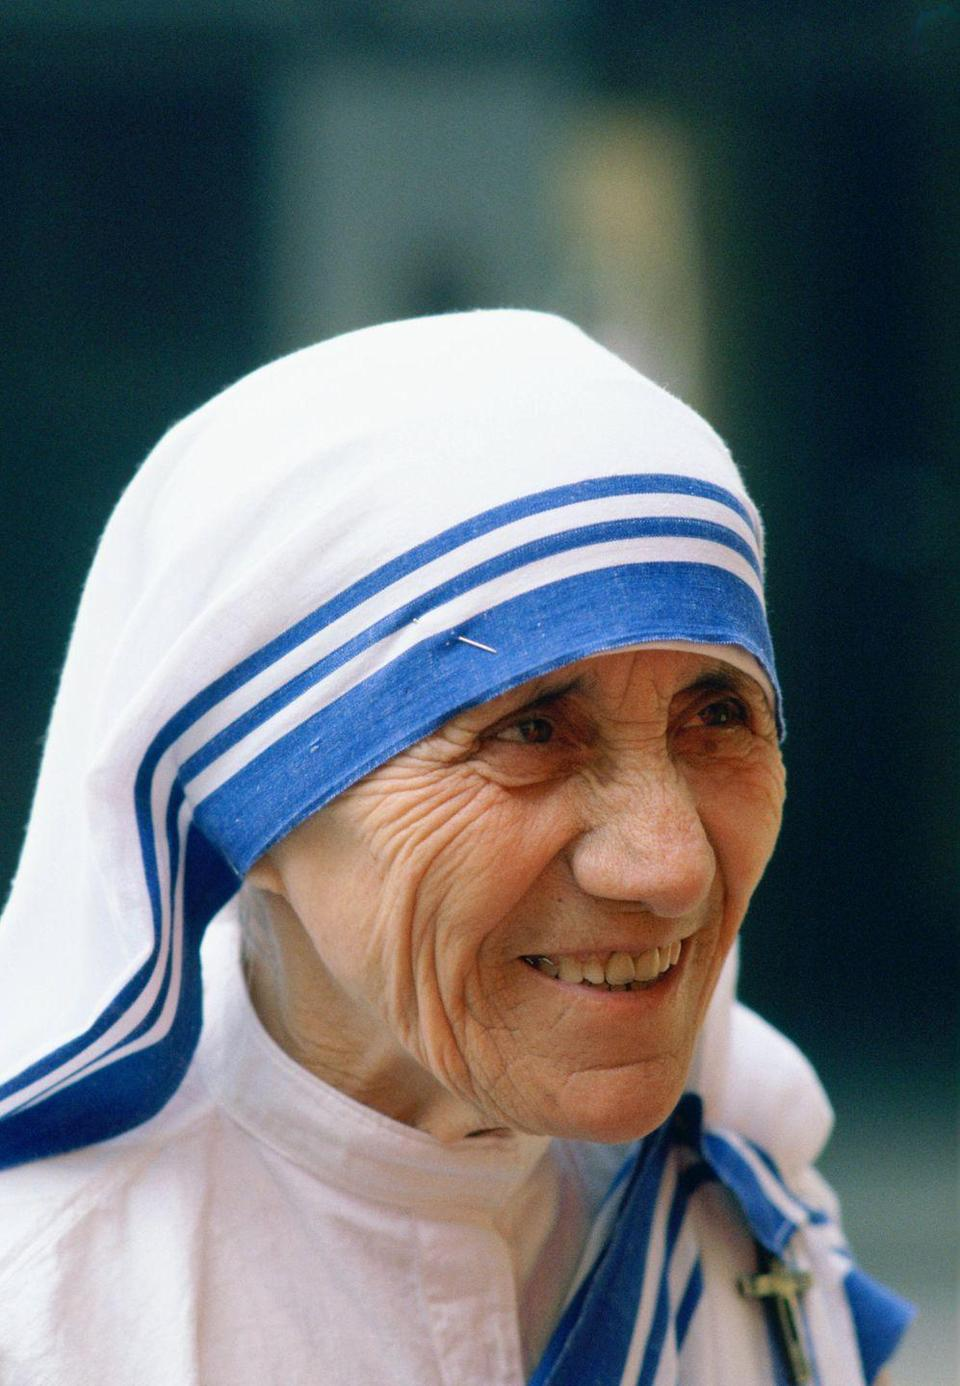 <p>People have strong opinions about when Mother Teresa was canonized as saint. The real event happened in 2016, but many remember her entering sainthood in the 1990s (when she was still alive). </p>